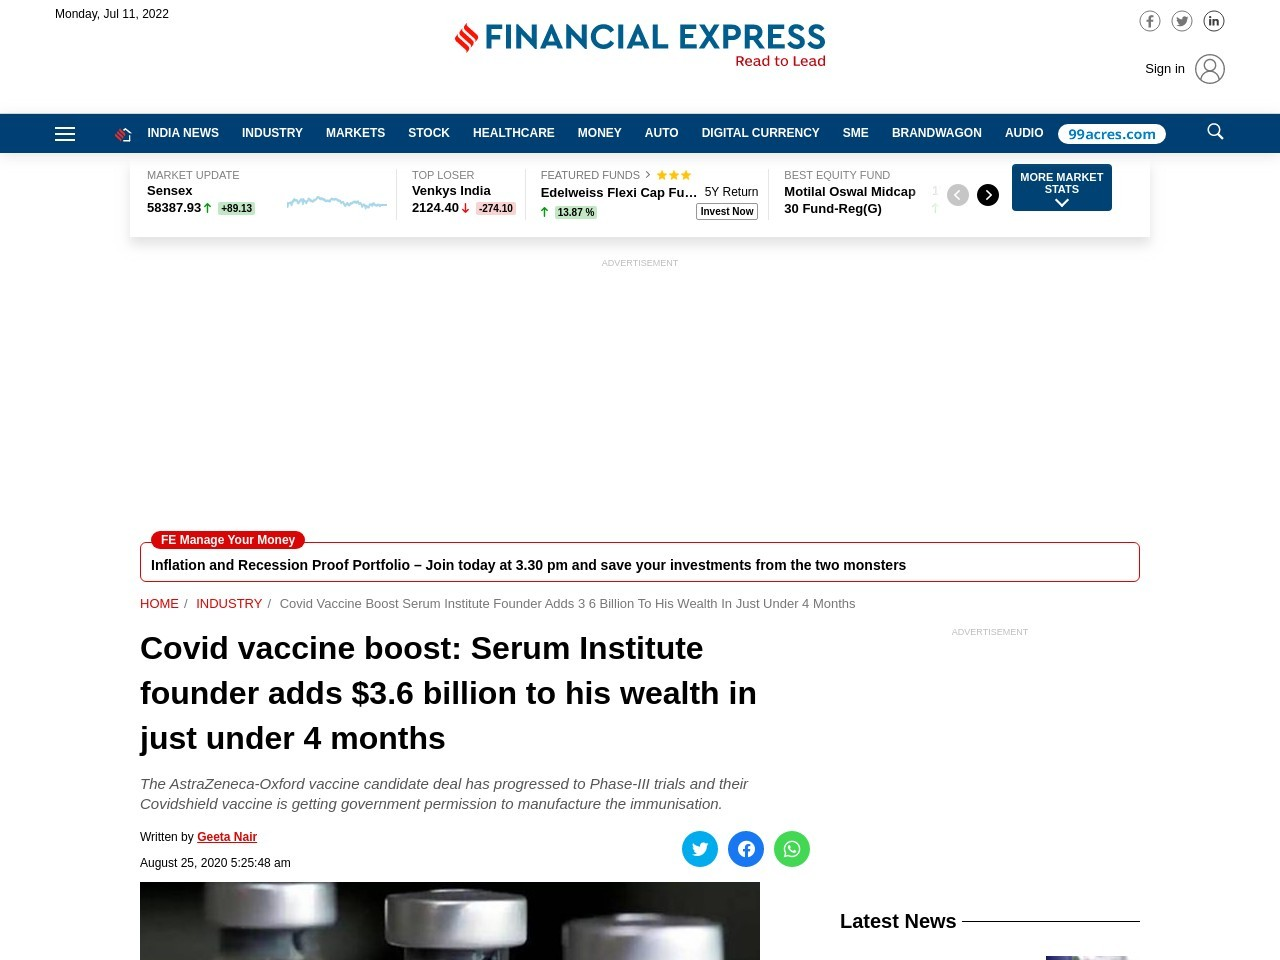 Covid vaccine boost: Serum Institute founder adds $3.6 billion to his wealth in just under 4months